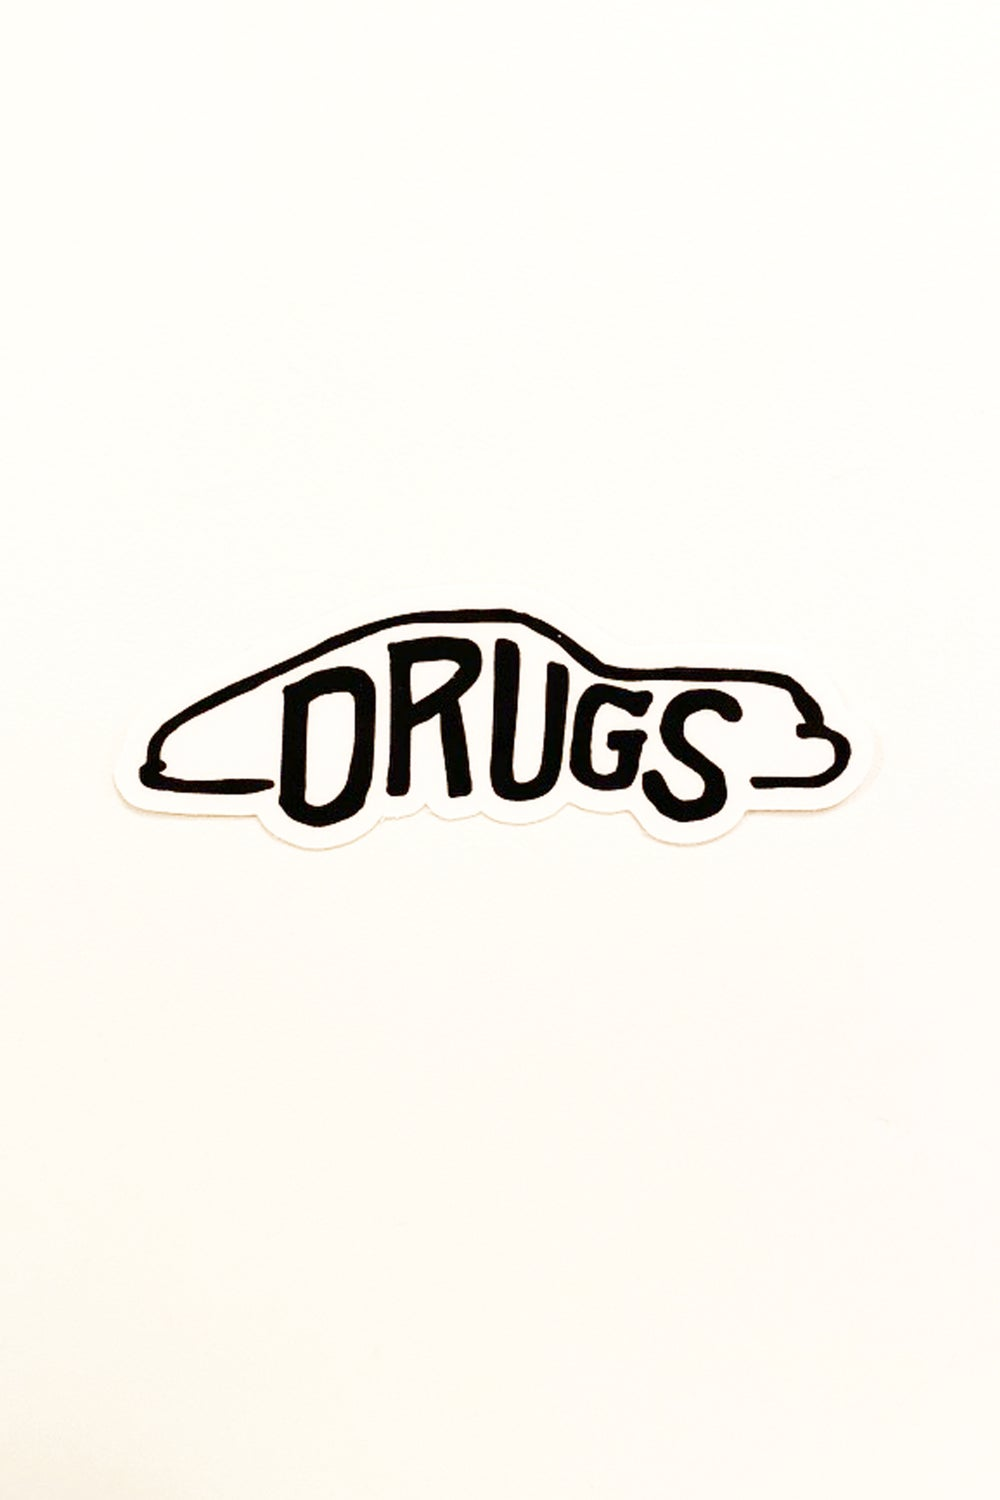 Image of Drugs Decal